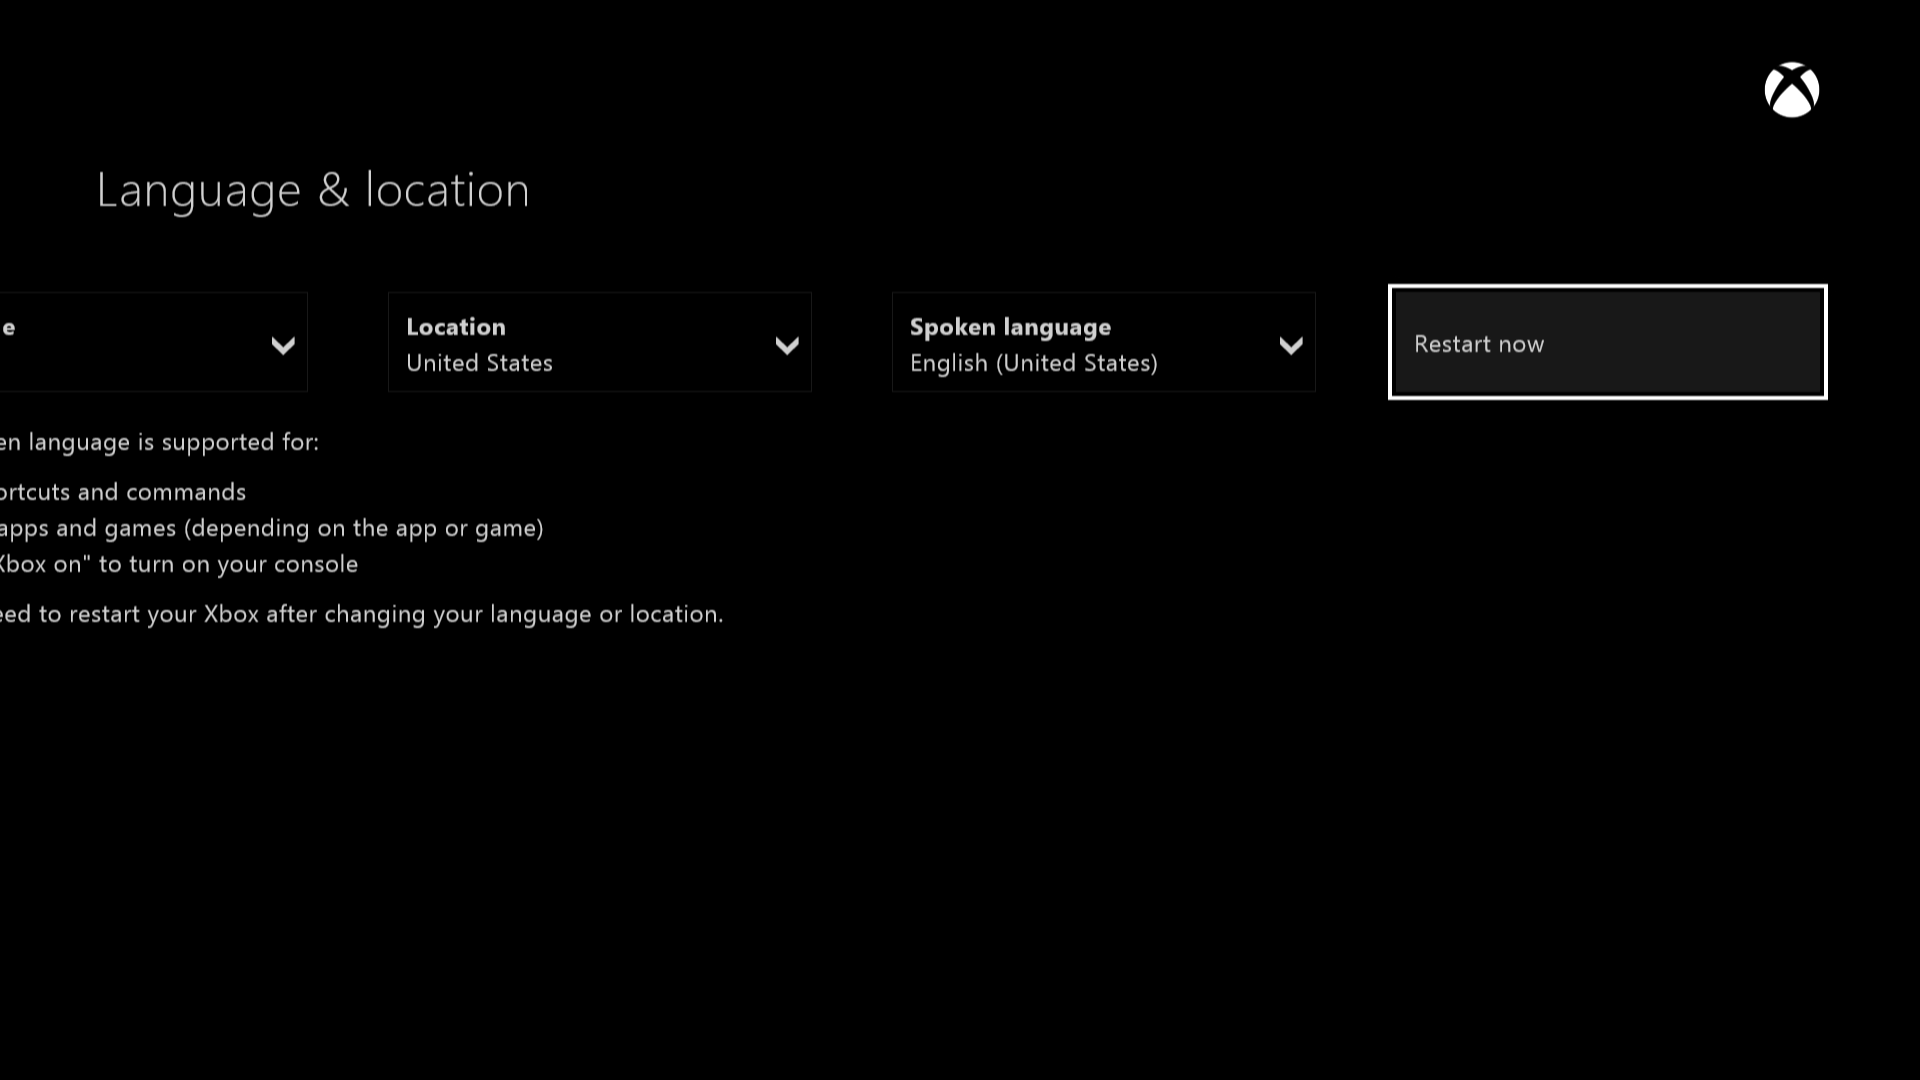 Xbox One restart screen